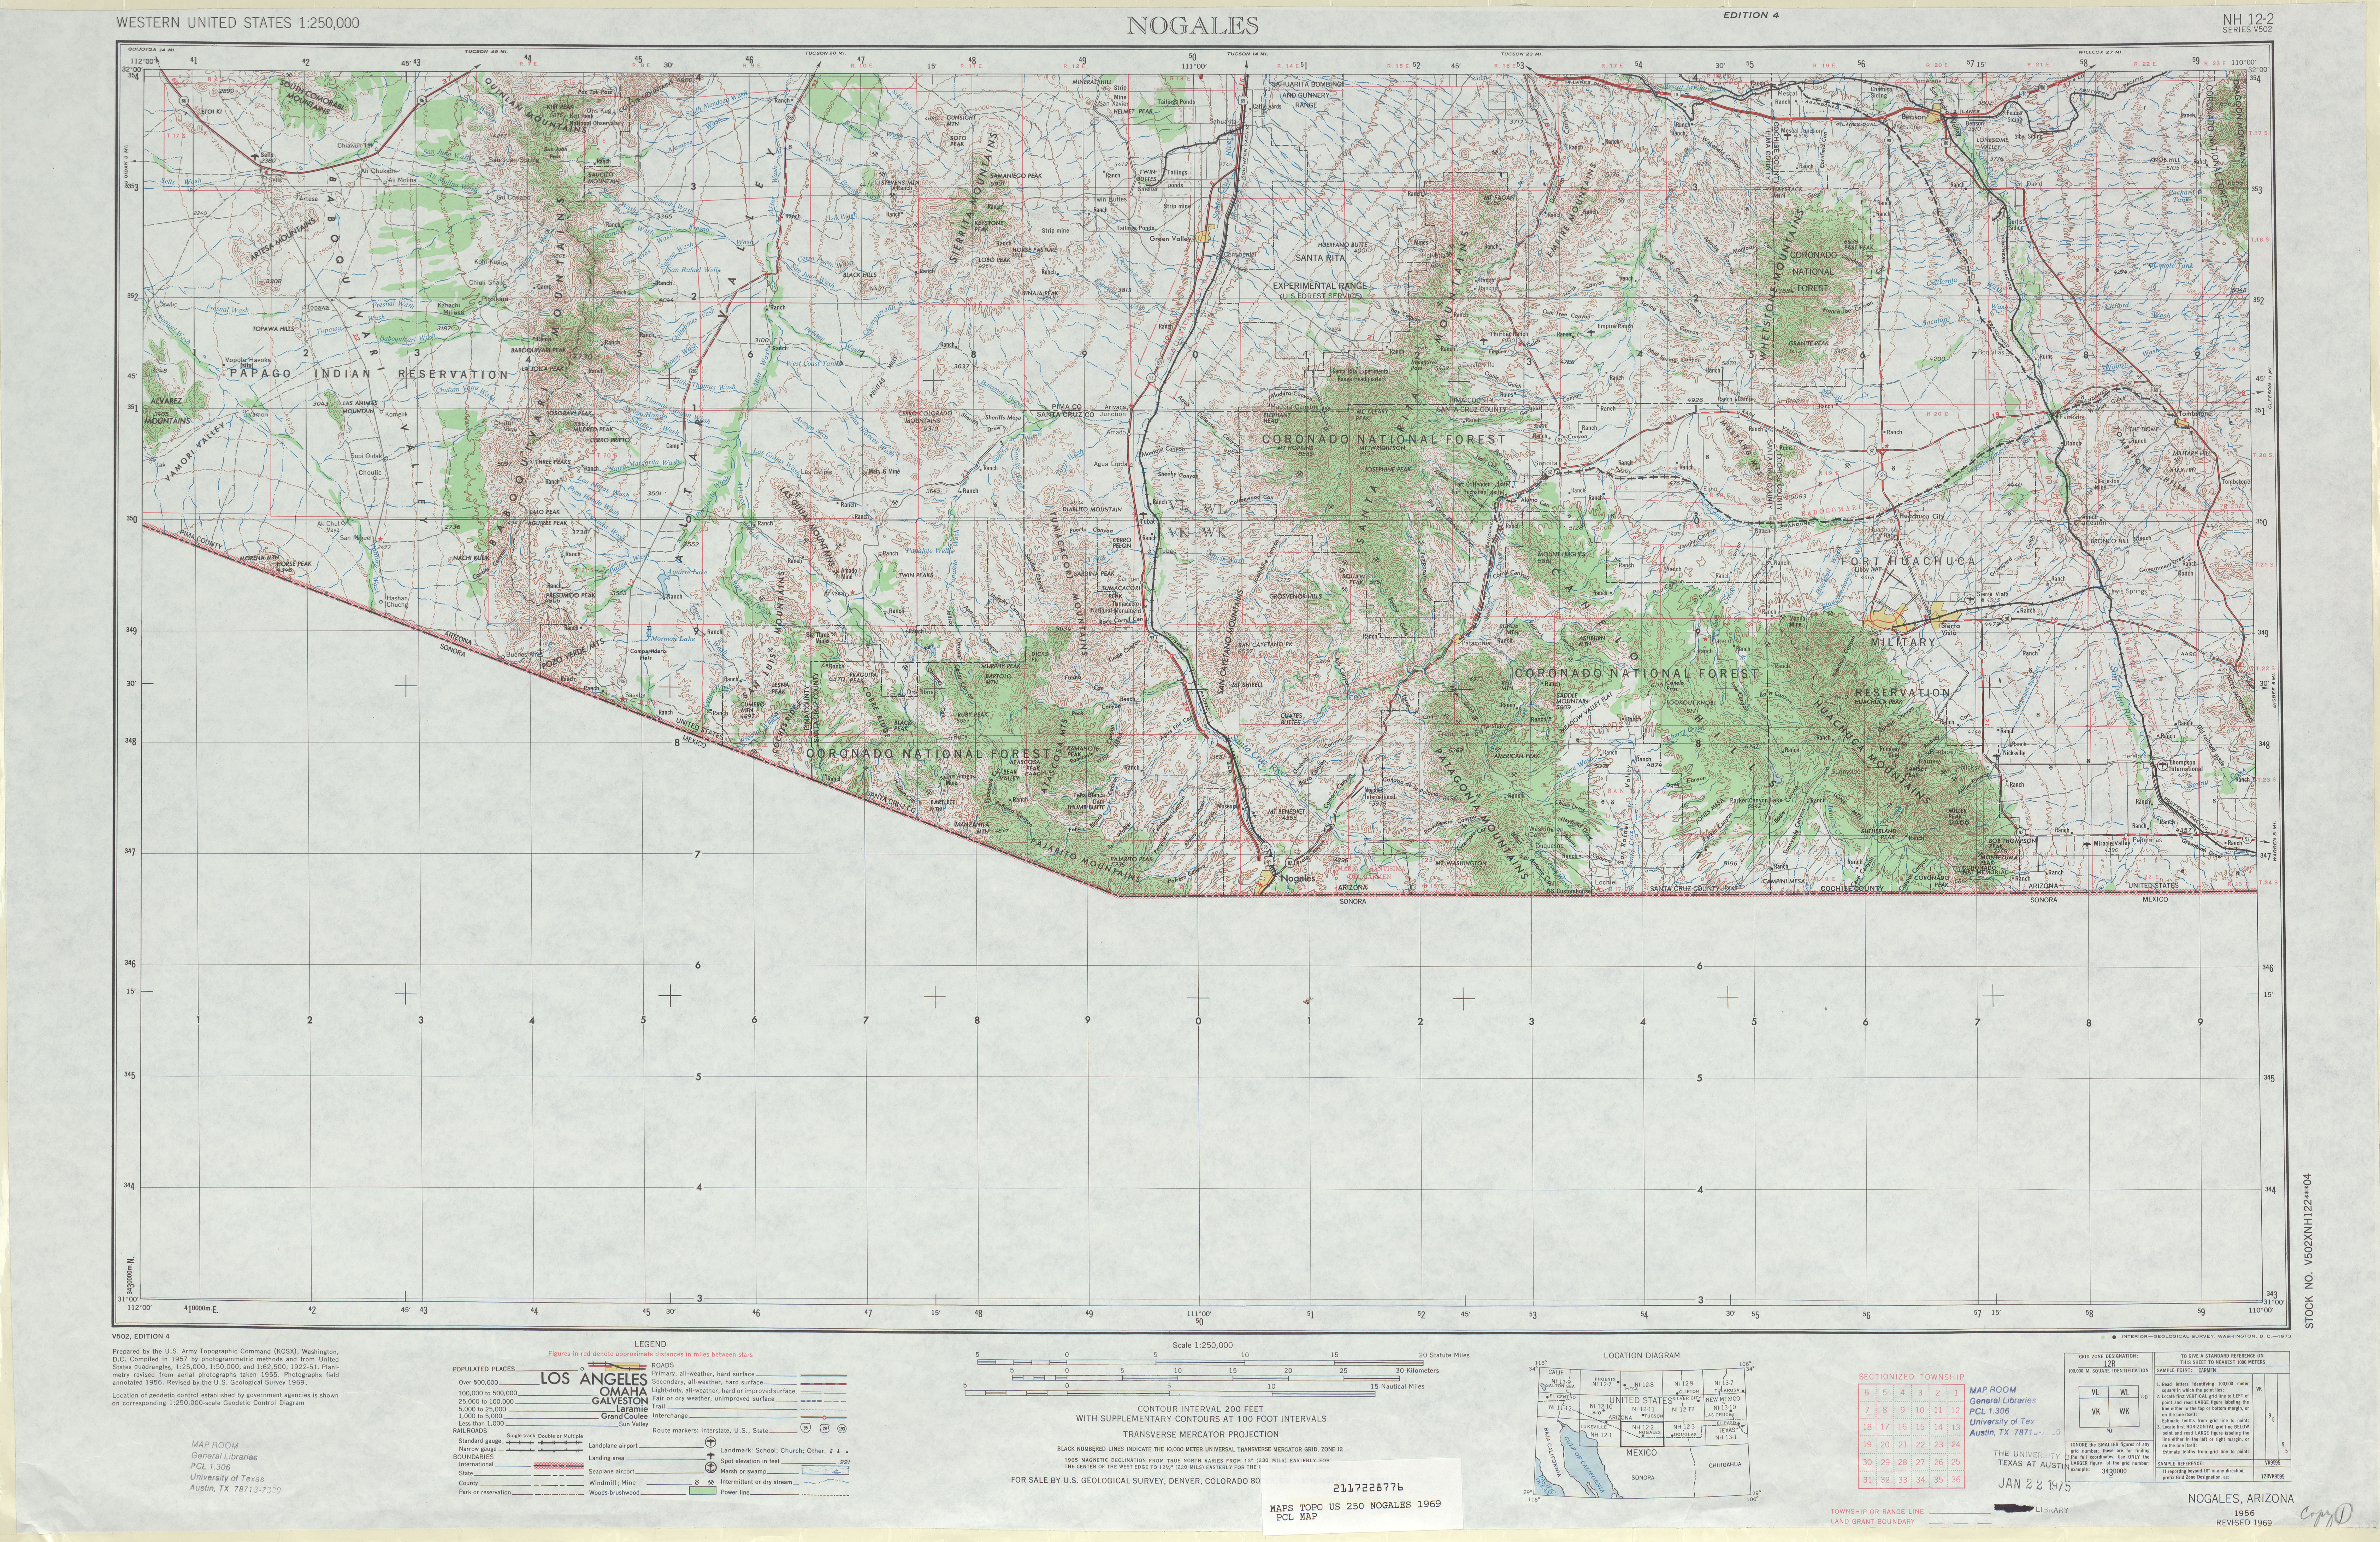 Nogales Topographic Map Sheet, United States 1969